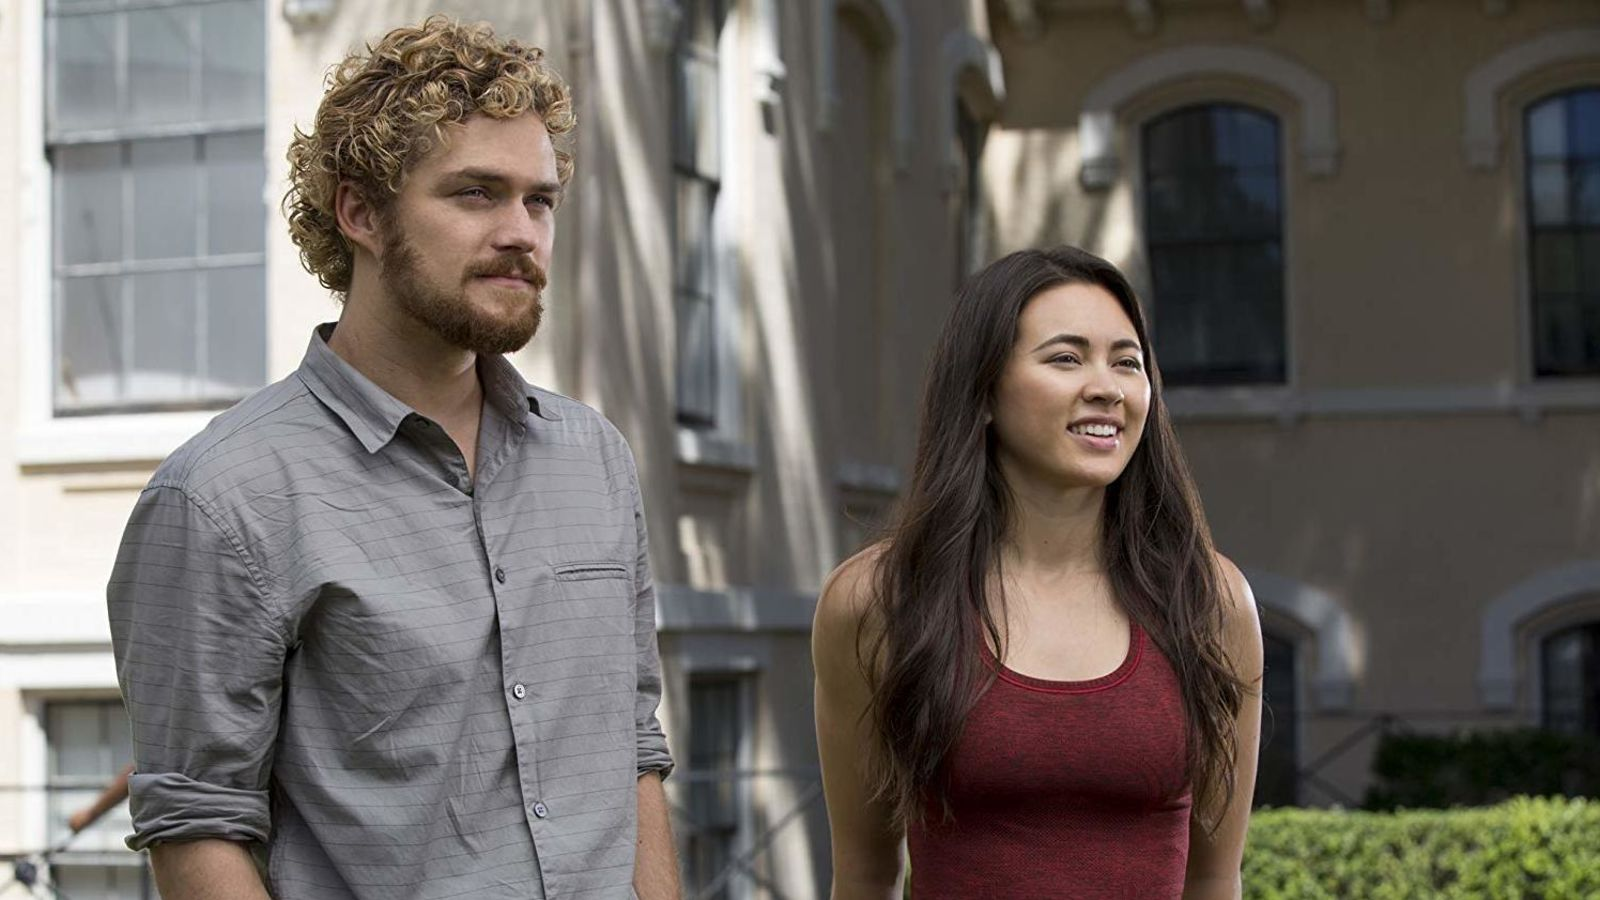 Holy Cow, Iron Fist Has Been Cancelled By Netflix Holy Cow, Iron Fist Has Been Cancelled By Netflix